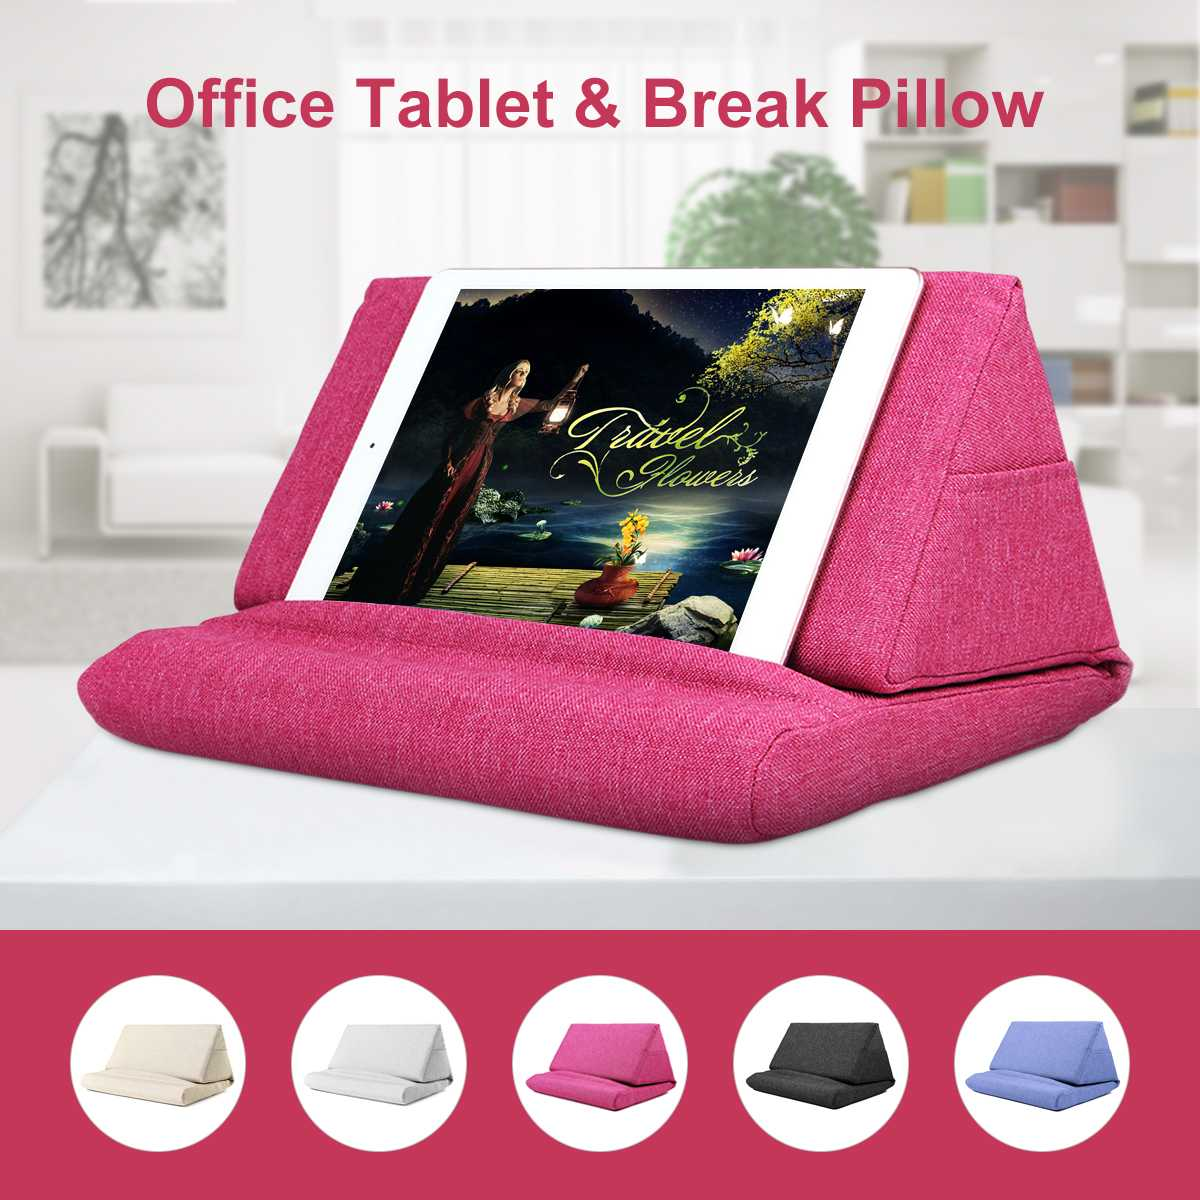 laptop tablet pillow foam lapdesk multifunction laptop cooling pad tablet stand holder stand lap rest cushion for ipad with bag